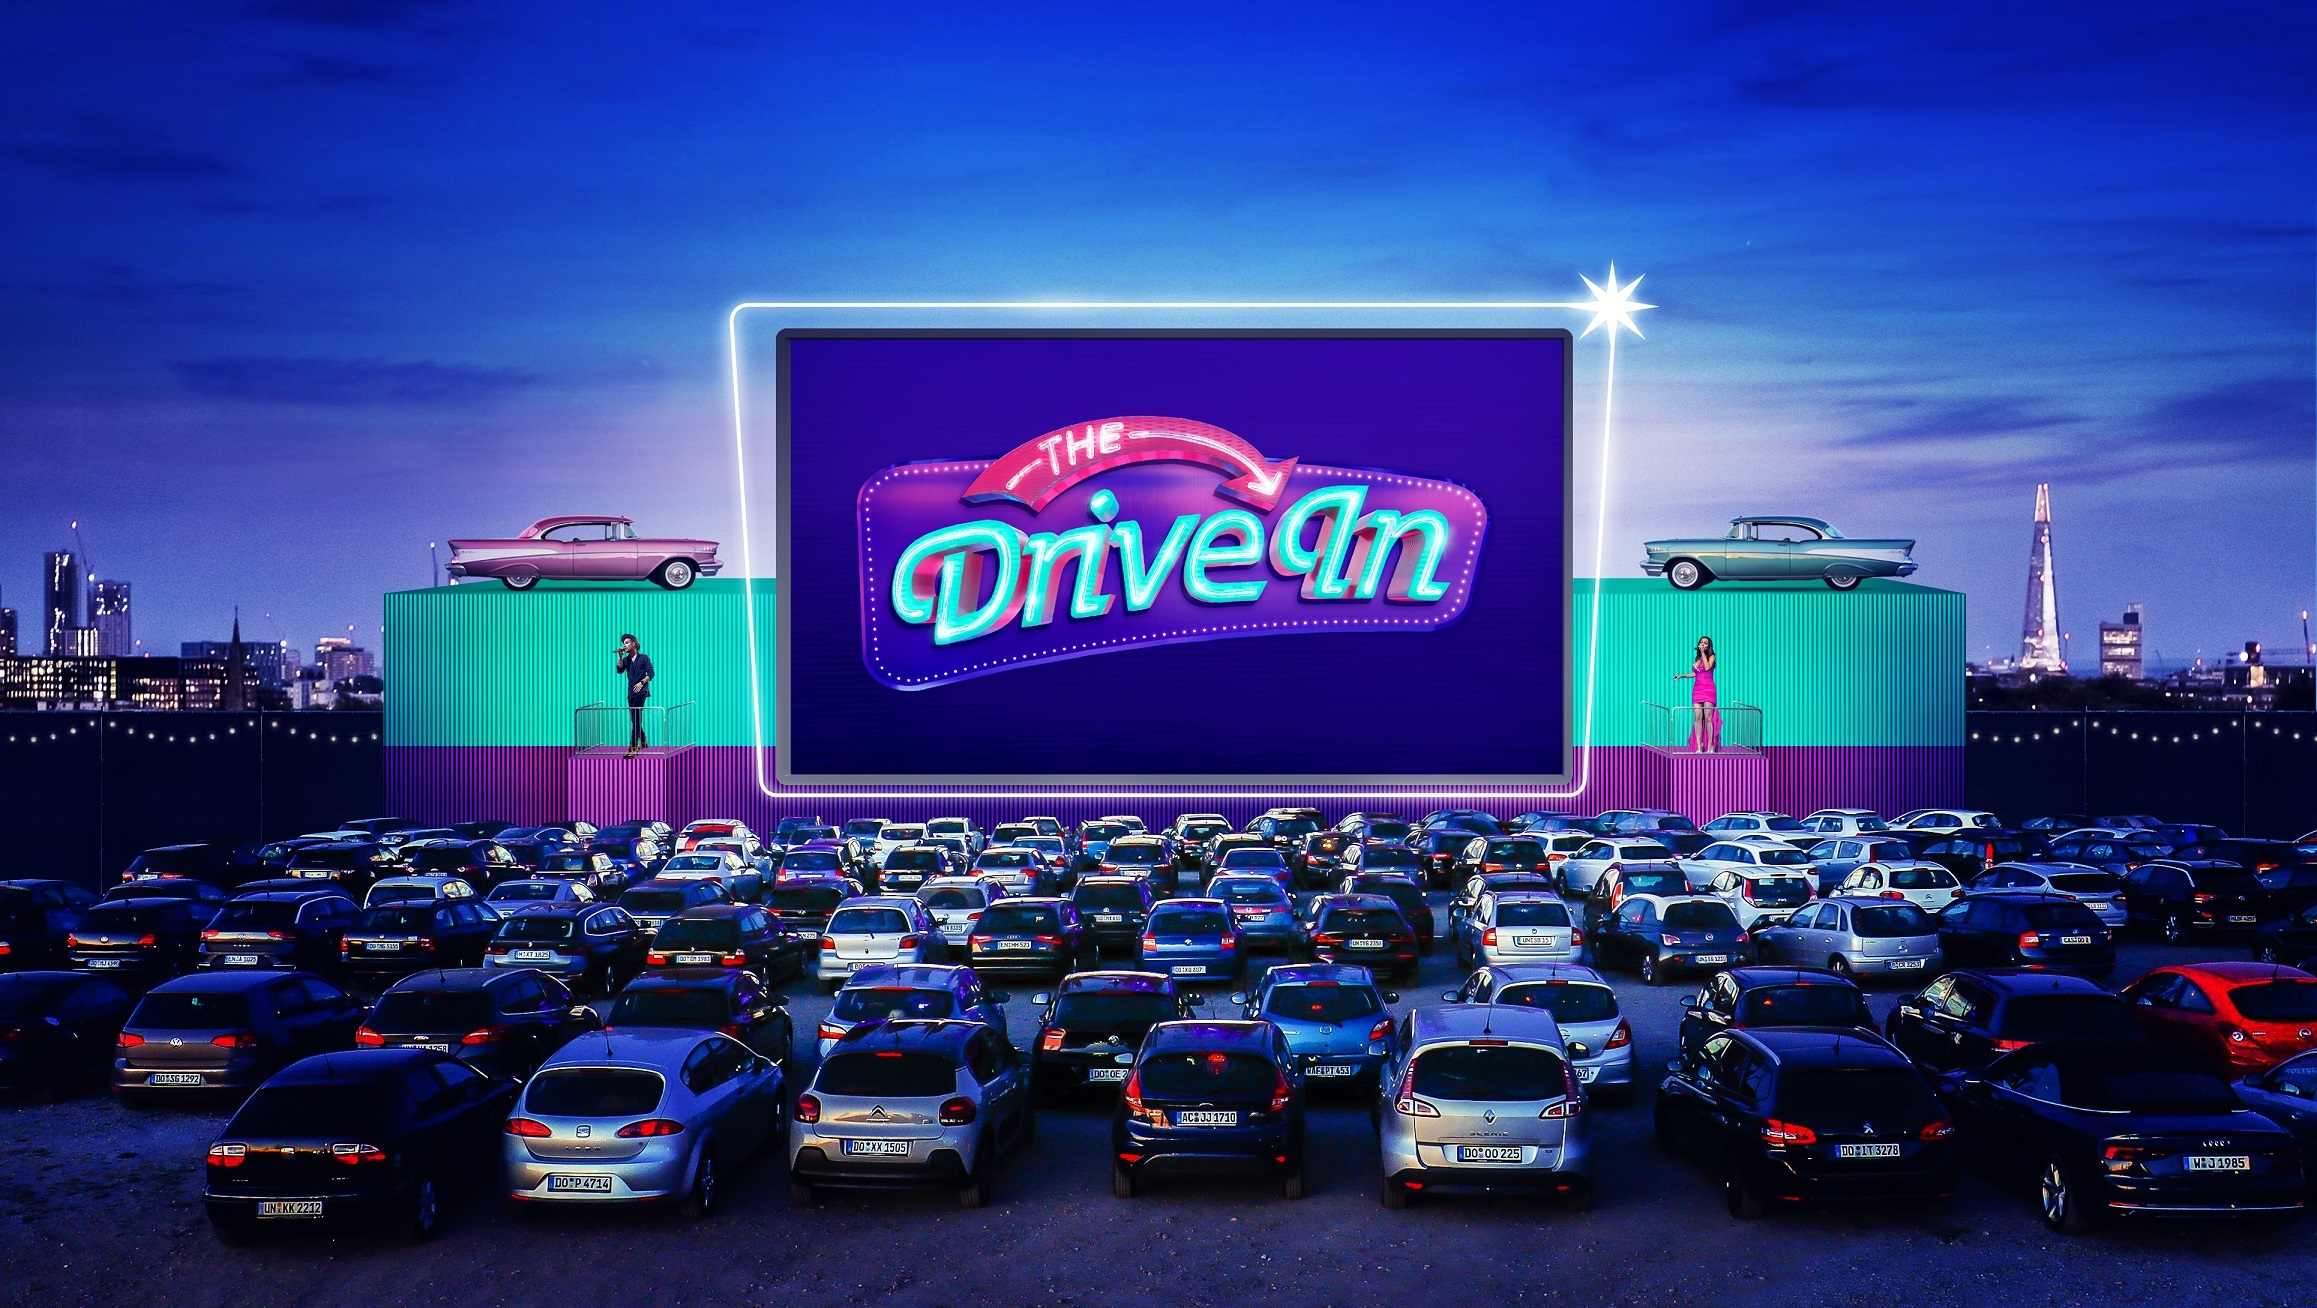 Another drive-in cinema is coming to London this summer